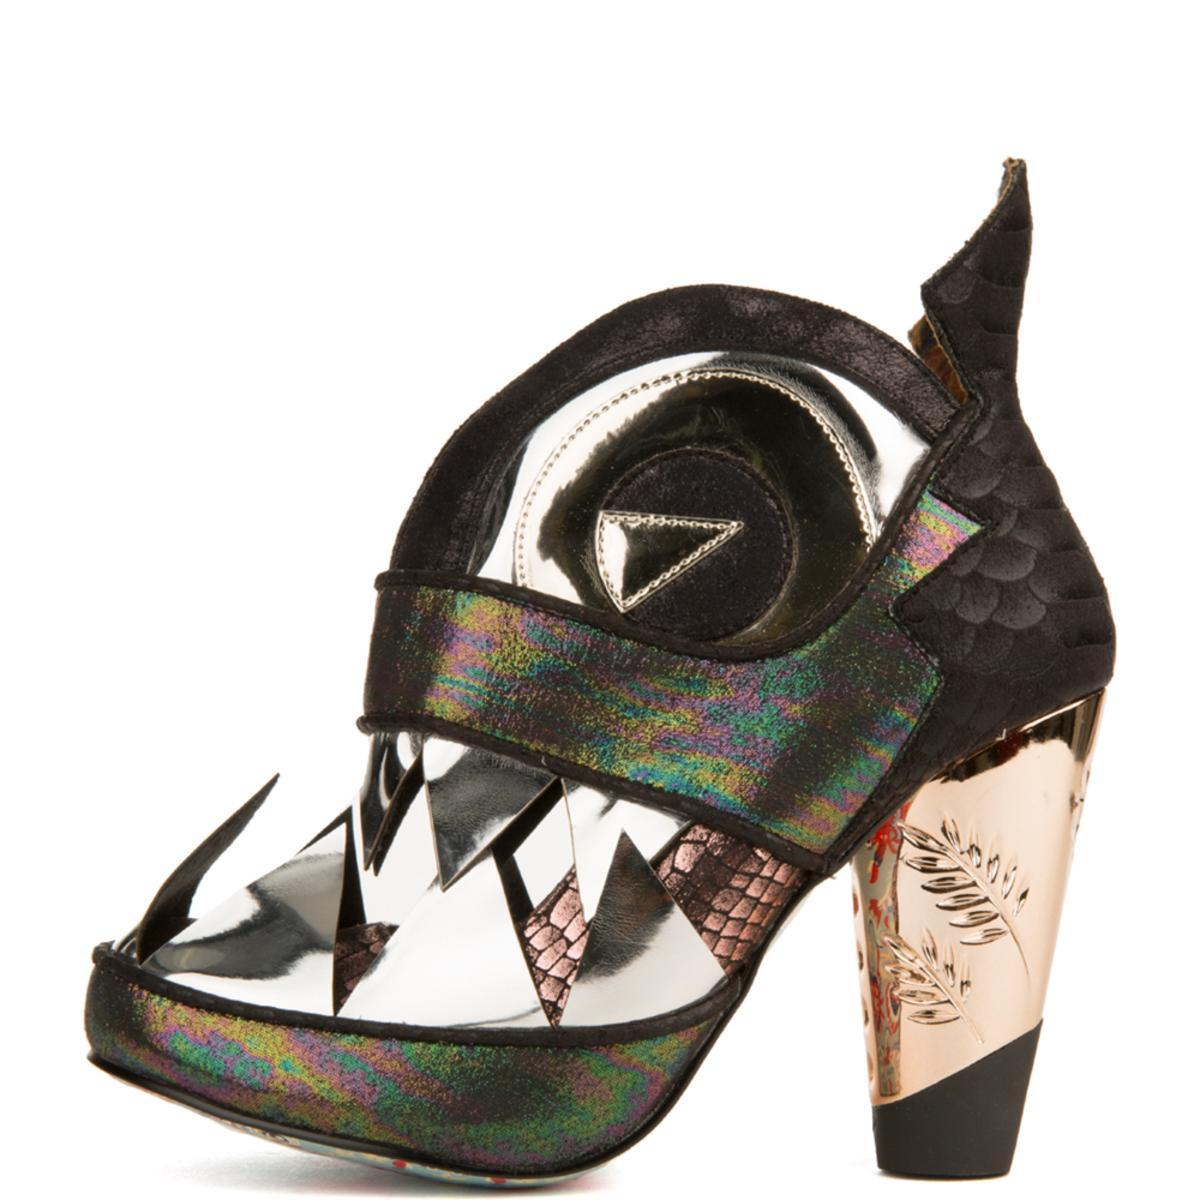 Irregular Choice for Women: I Don't Bite Pewter Heeled Booties